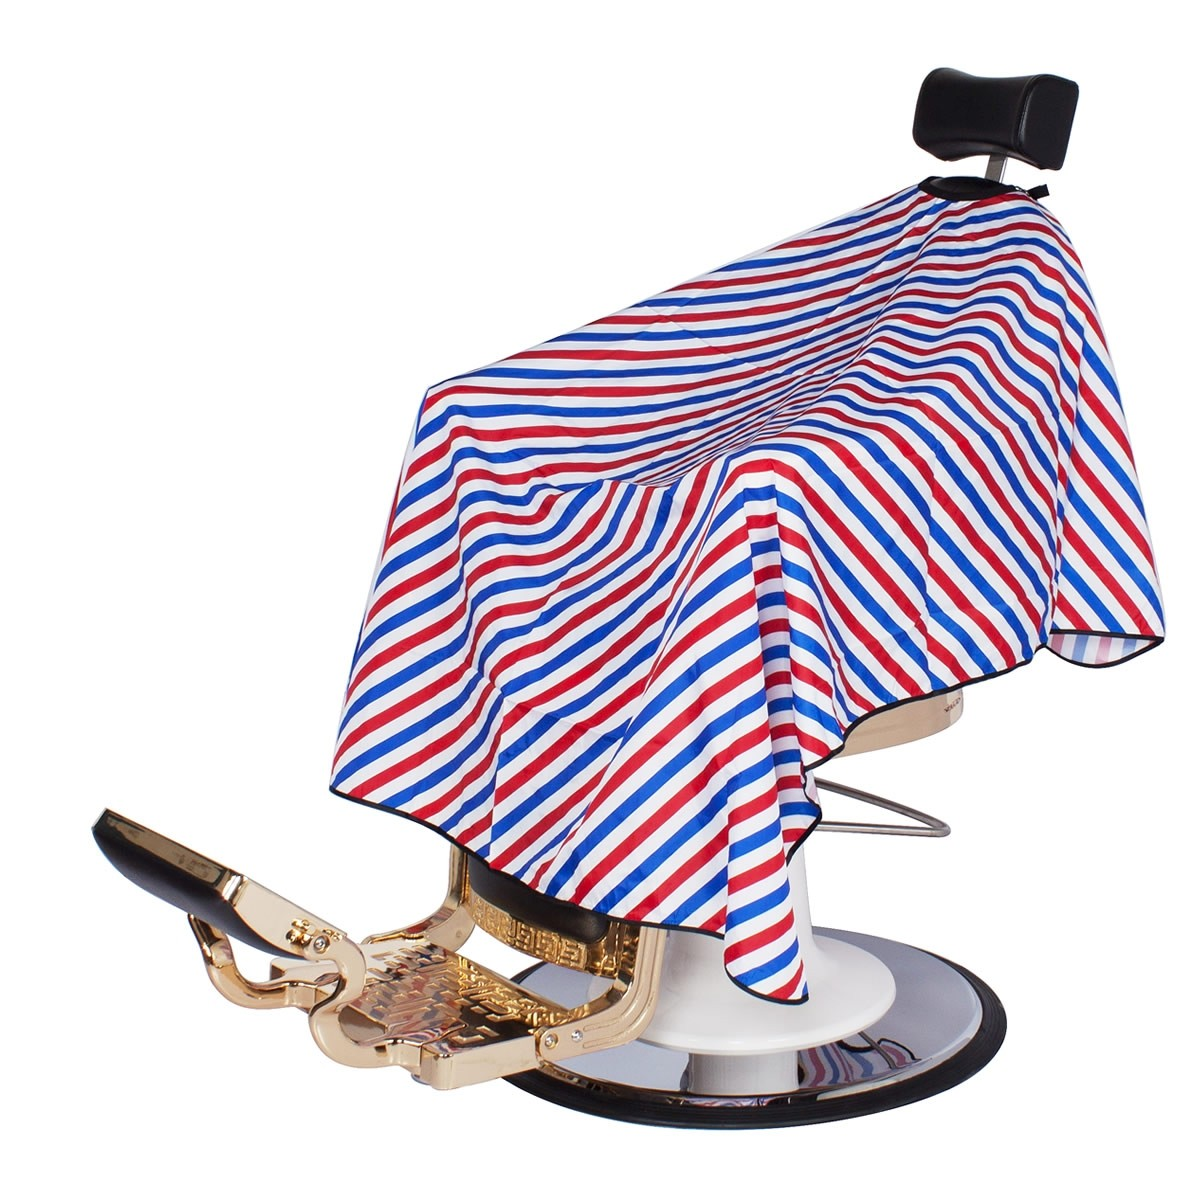 BC-01 Hair Cutting Cape, salon capes, barber capes, hair cutting capes